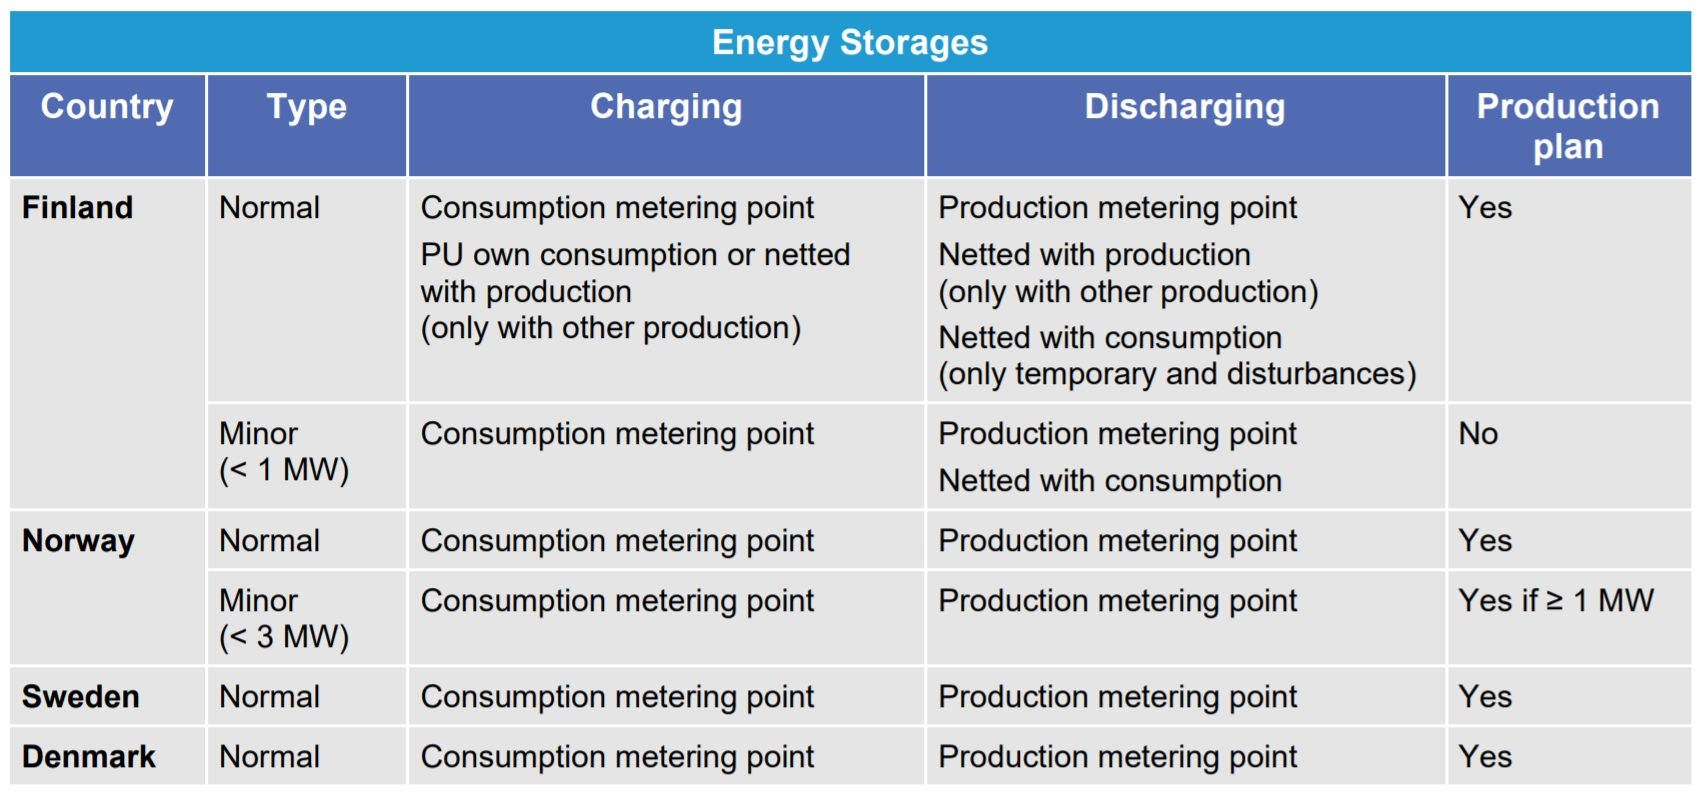 Handling of energy storages in different countries. This table compiles the cases for handling of energy storages in imbalance settlement per country and type.